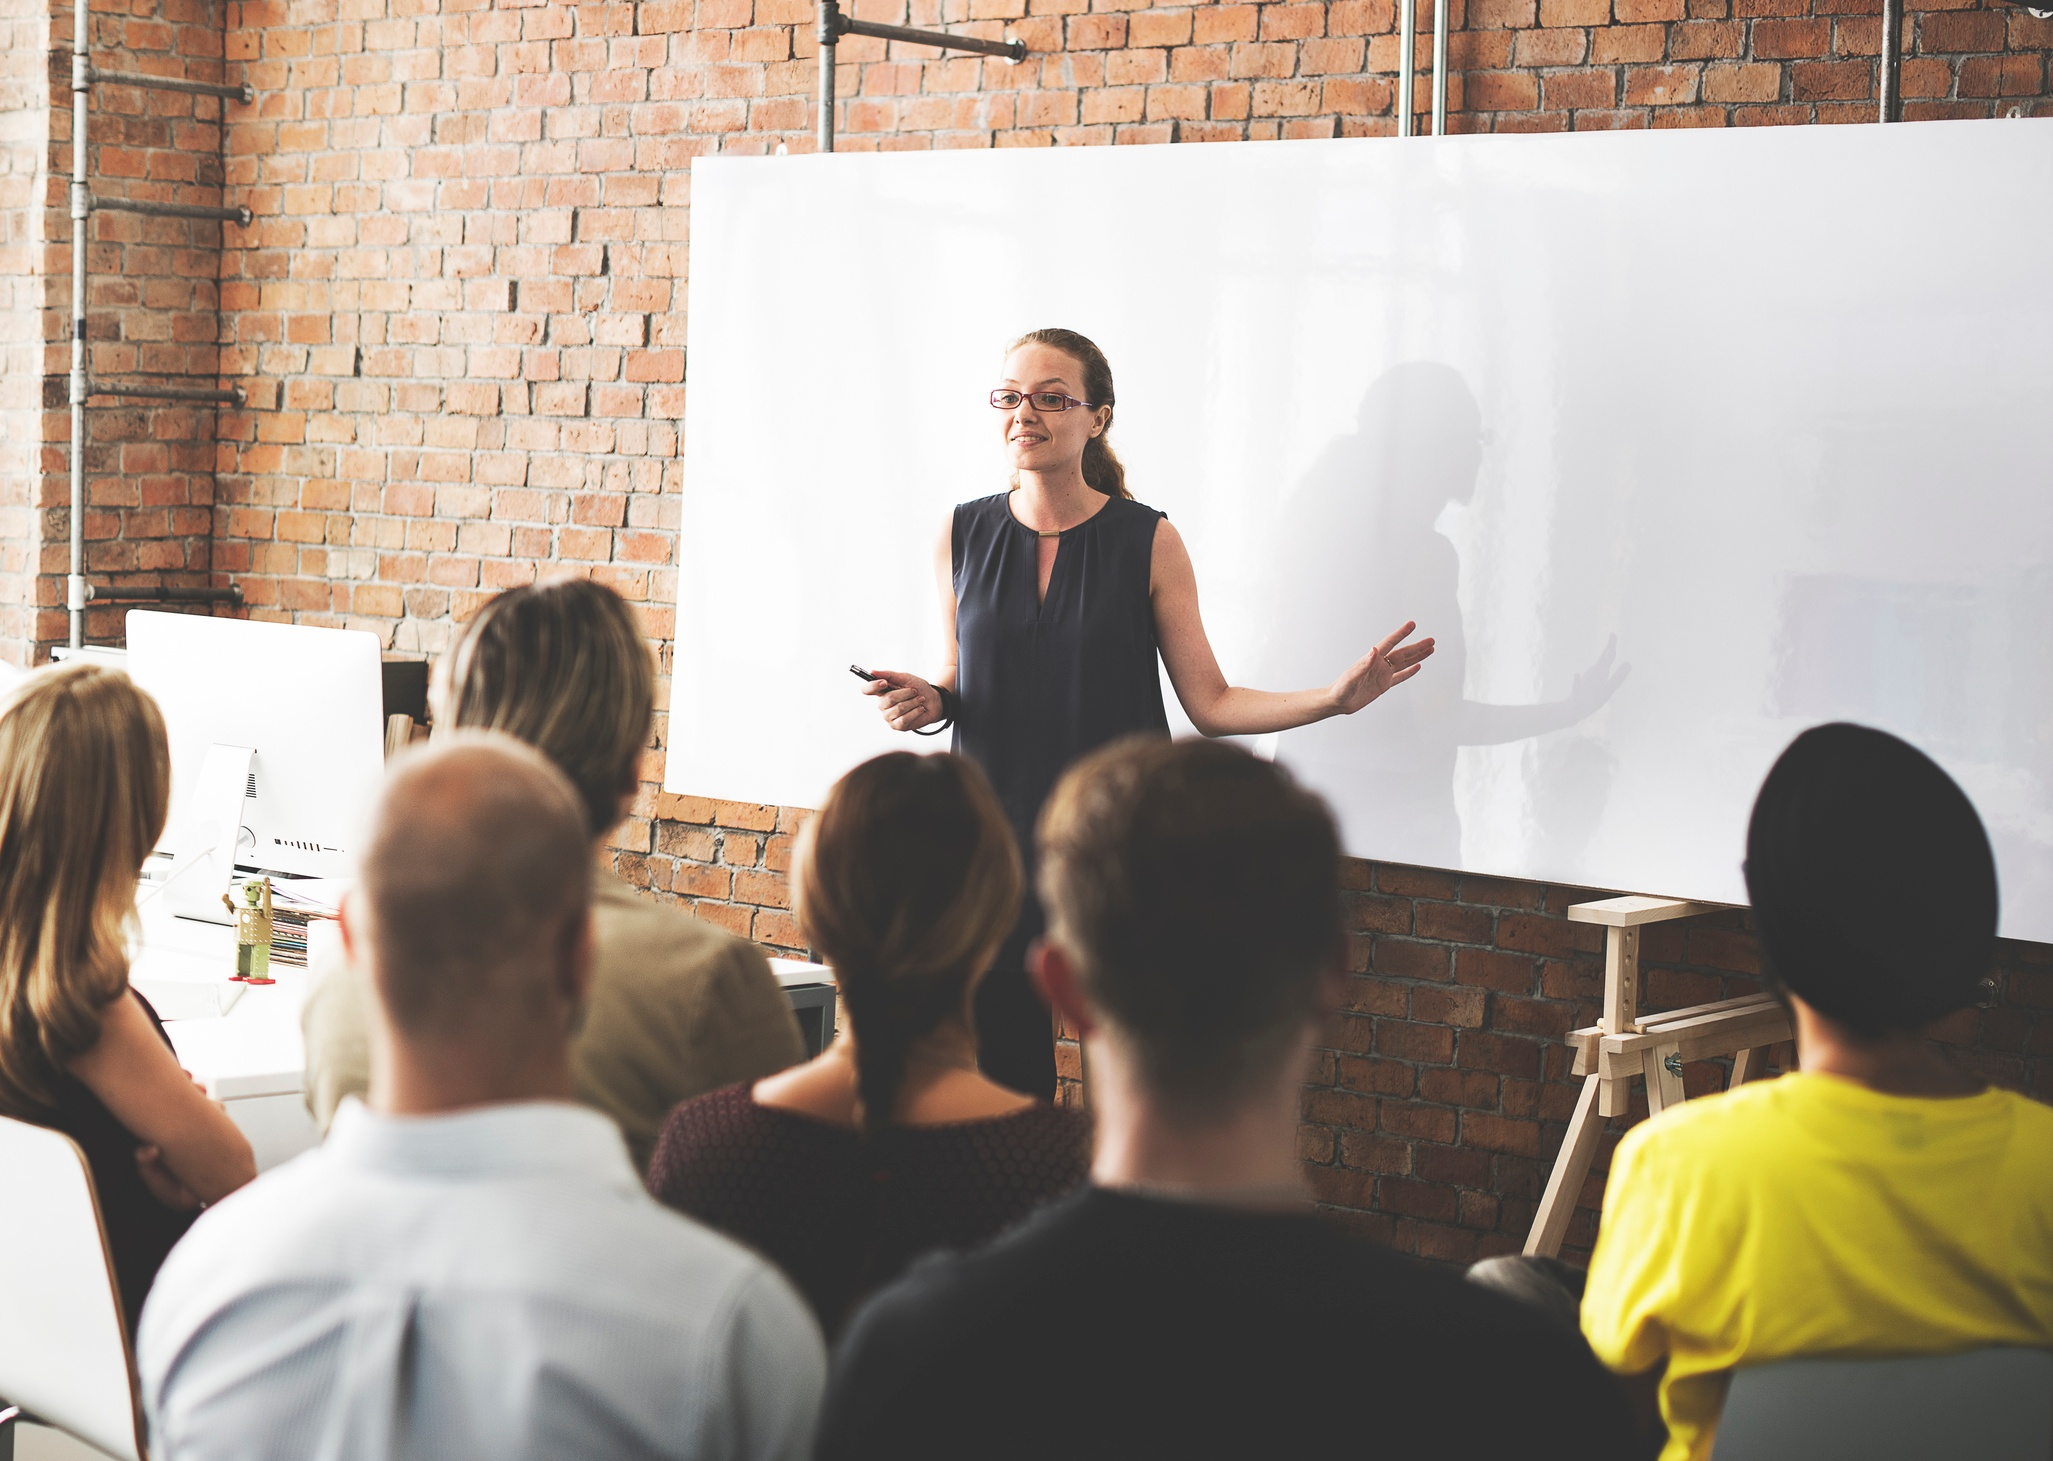 How do we become an eloquent speaker?